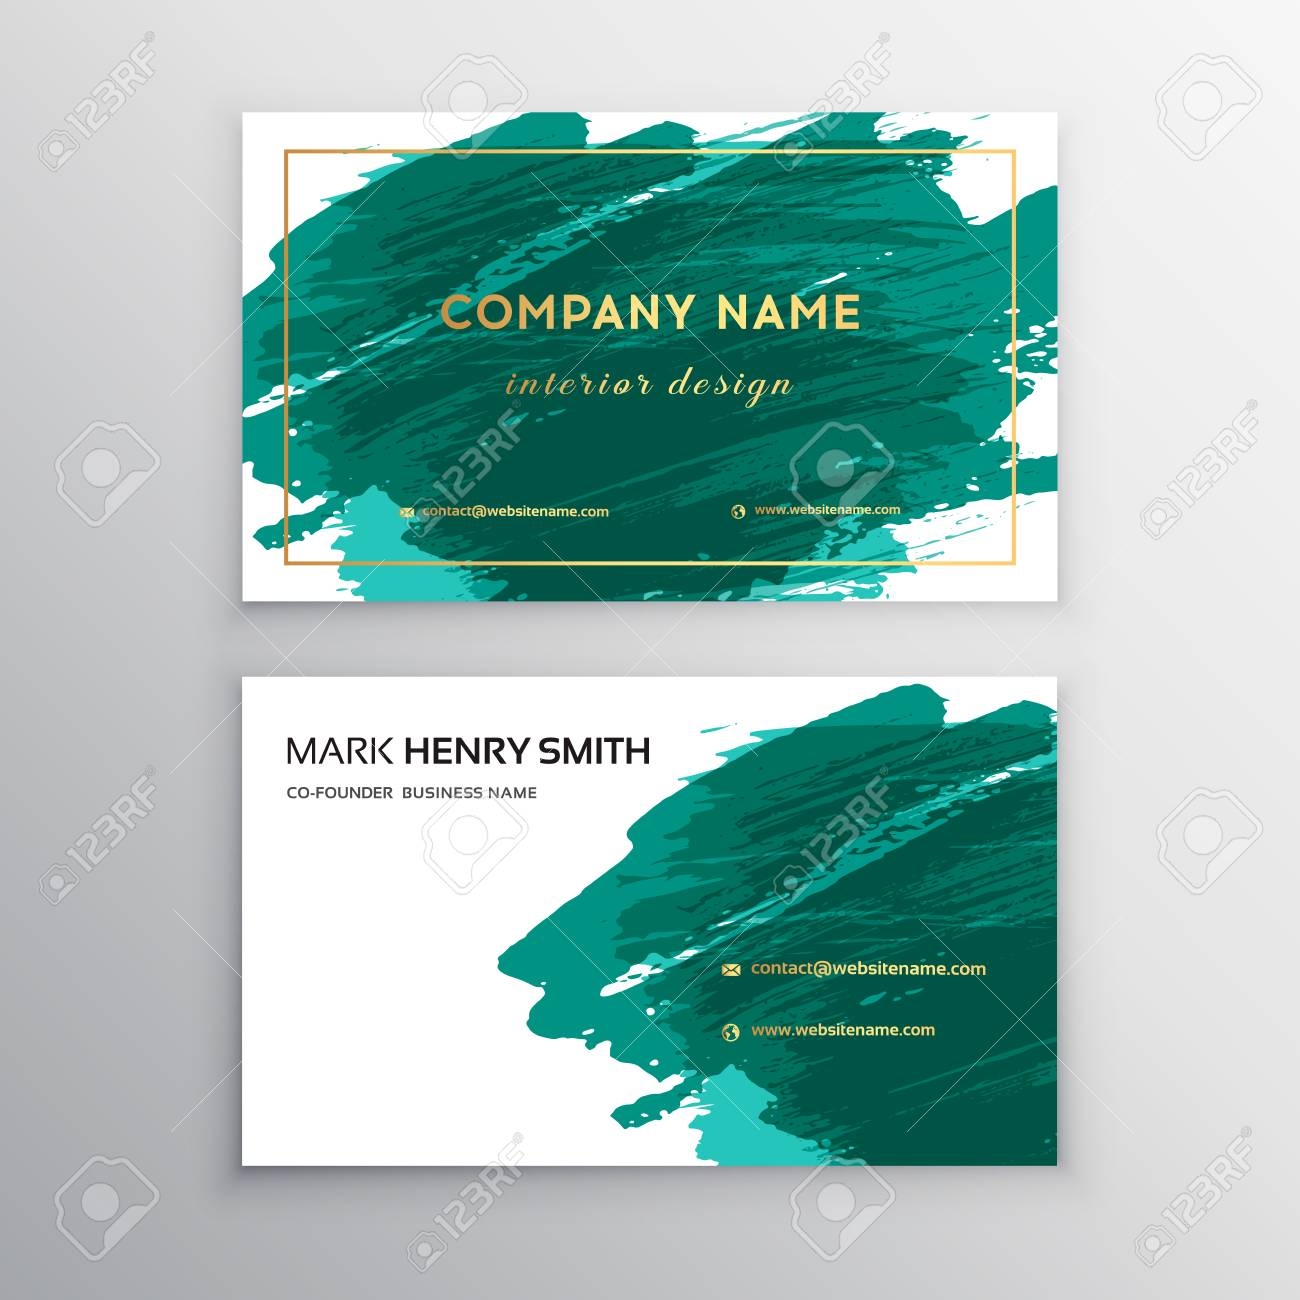 vector business card luxury business card design vector modern